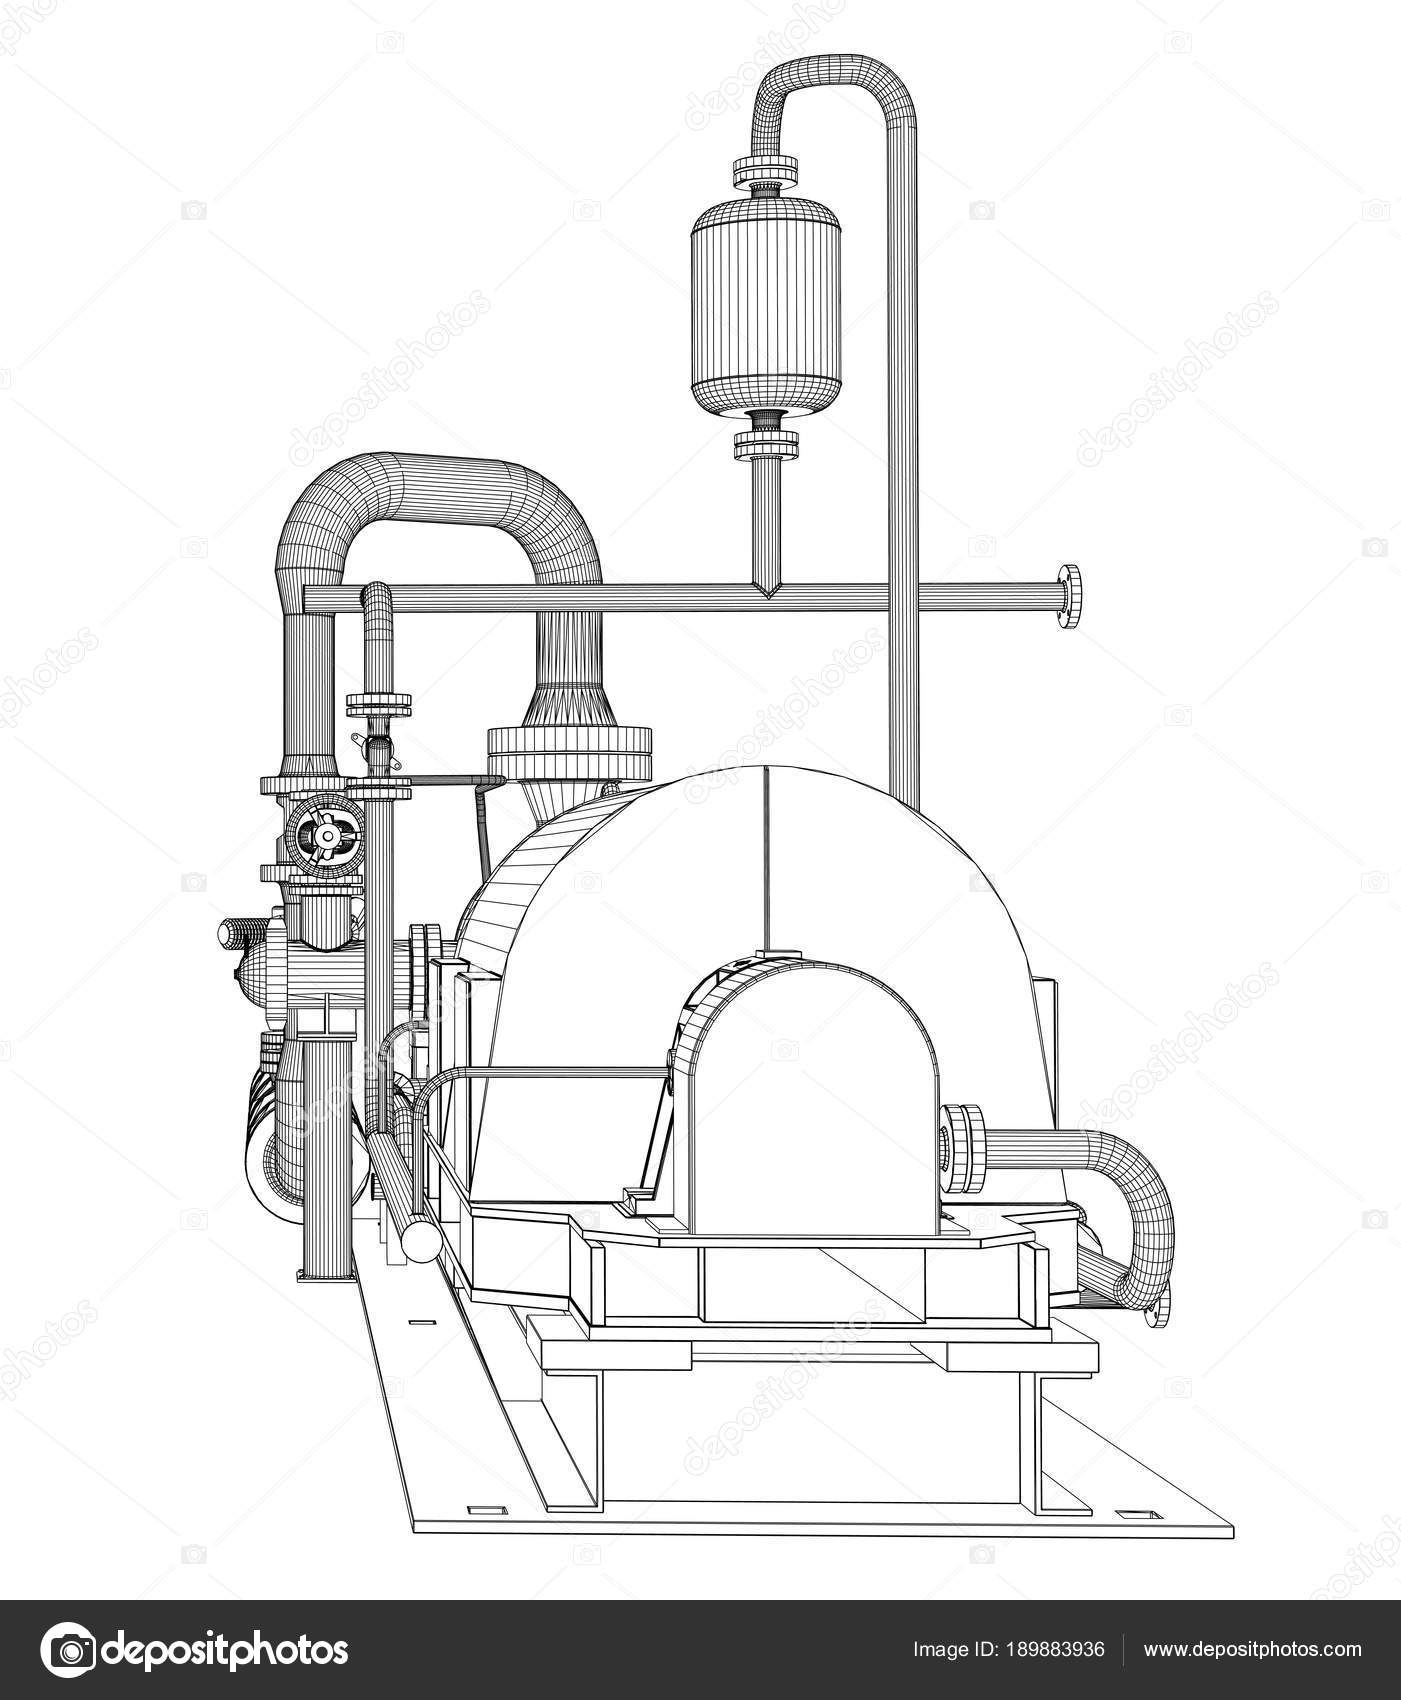 hight resolution of wire frame industrial pump stock photo